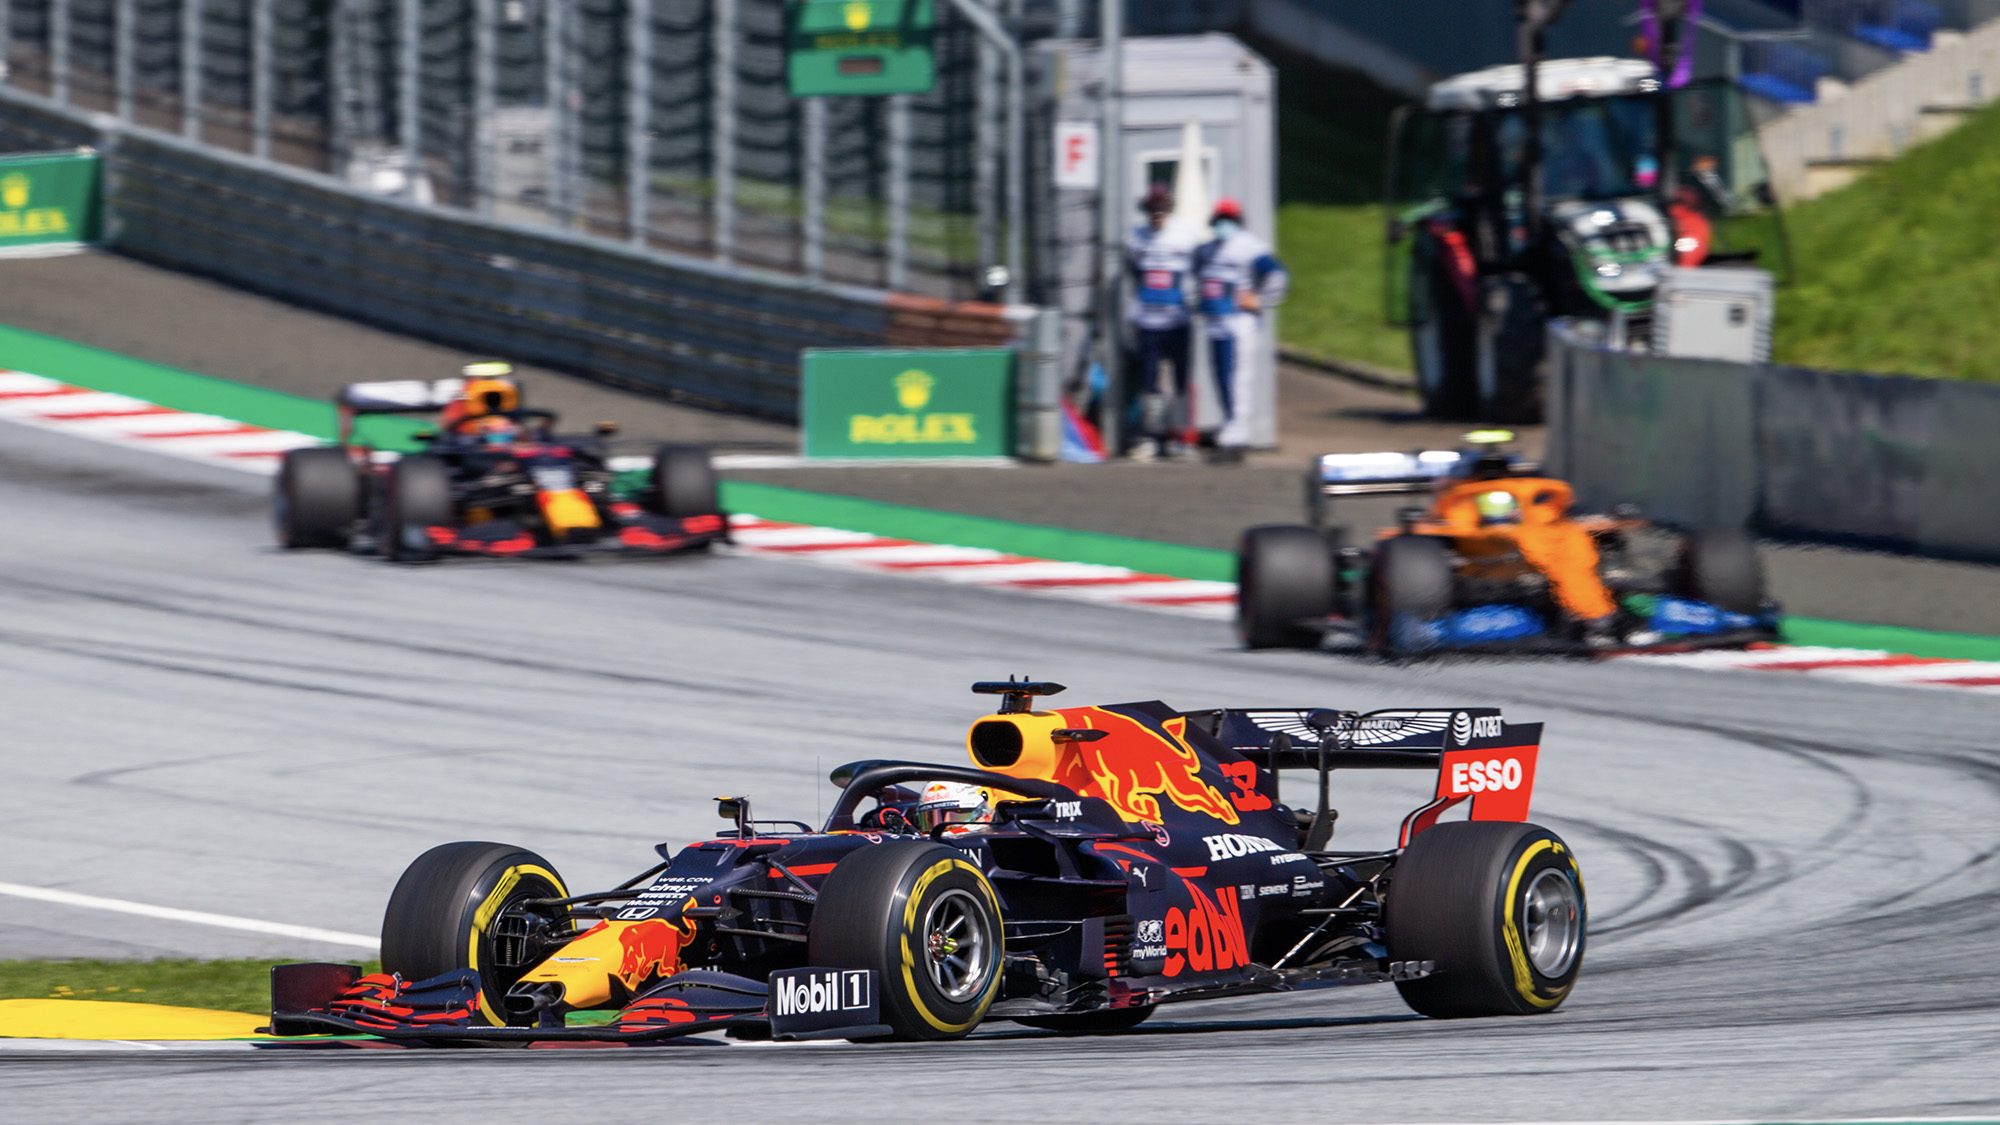 Max Verstappen ahead of Lando Norris and Alex Albon in the early laps of the 2020 Austrian Grand Prix